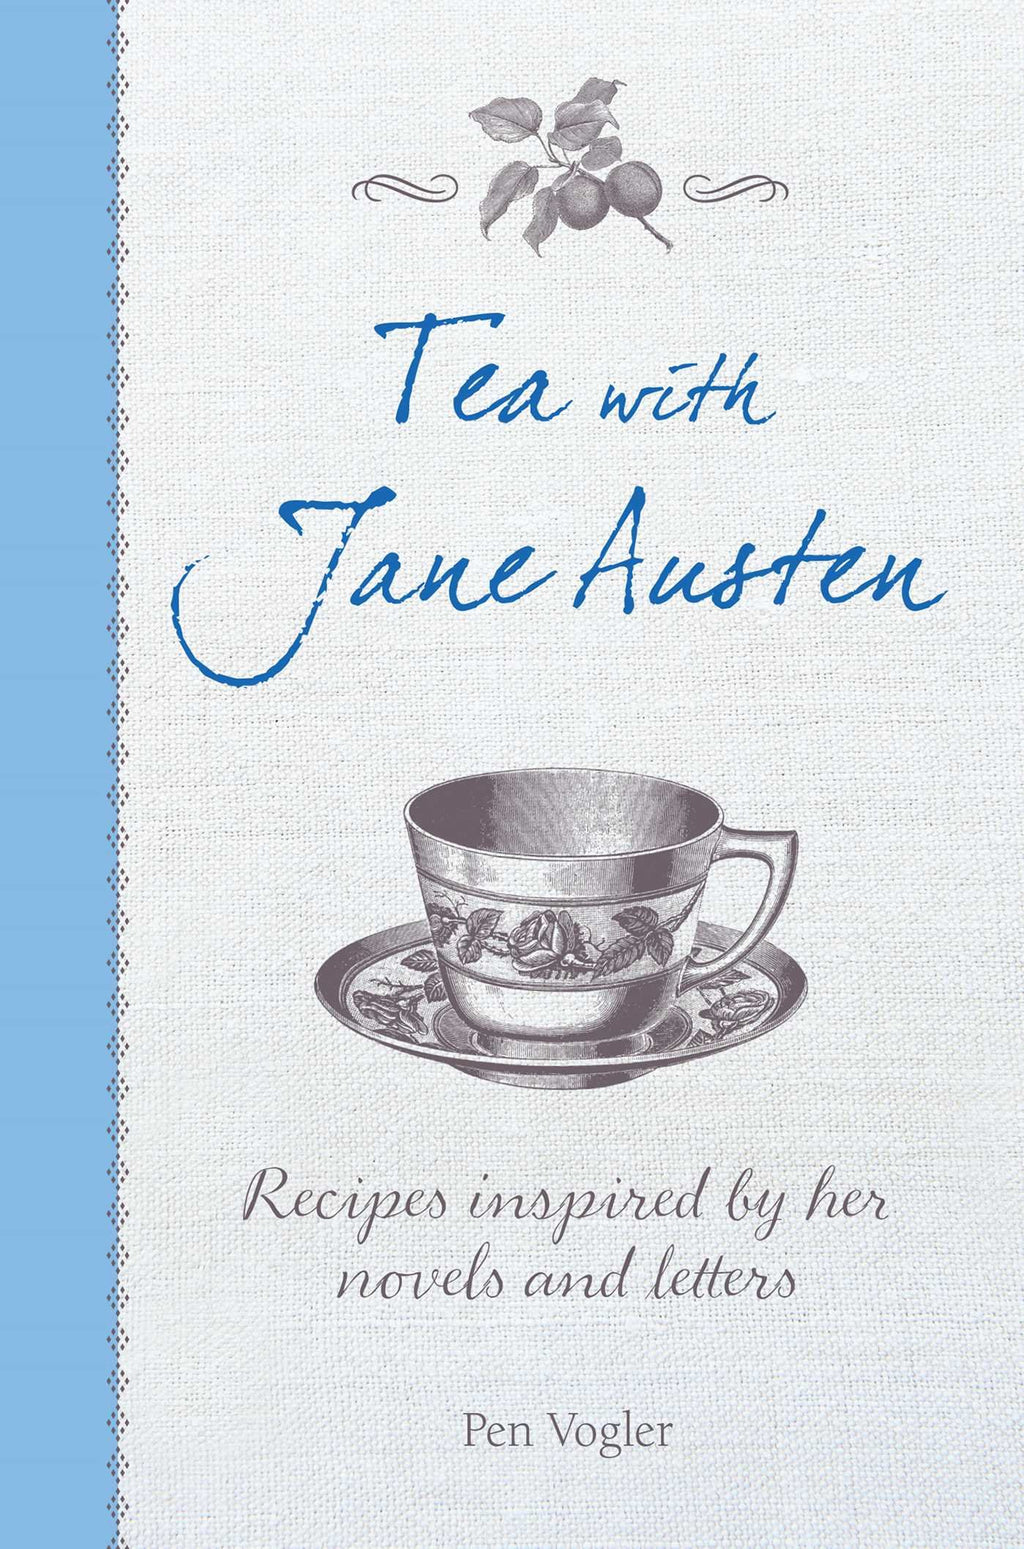 Tea with Jane Austen | Pen Vogler